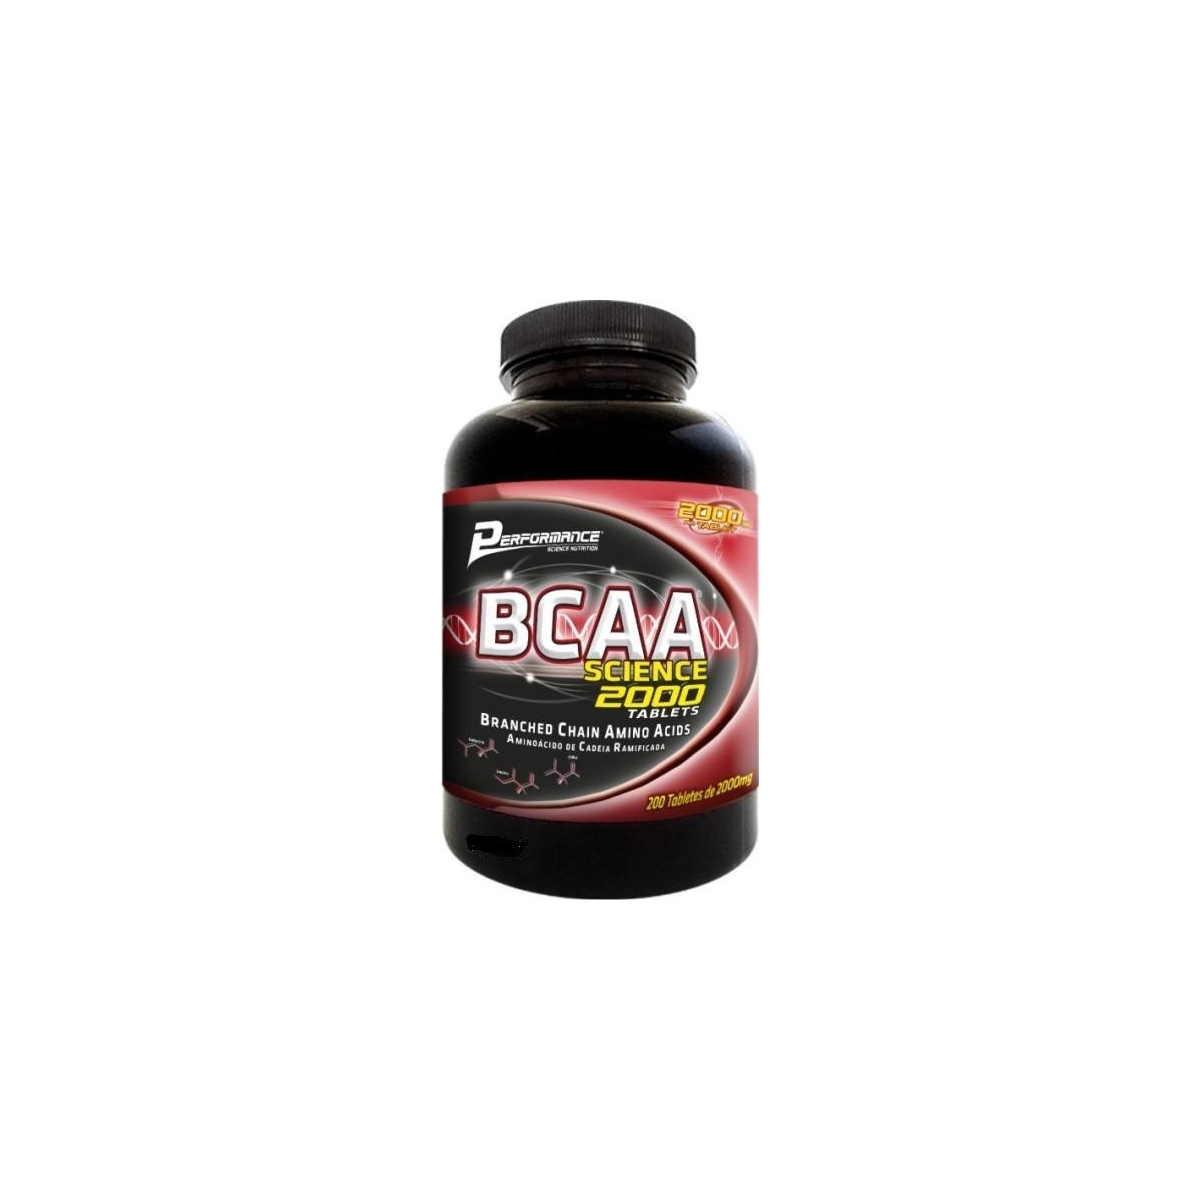 BCAA SCIENCE 2000MG (200 TABS) - PERFORMANCE NUTRITION